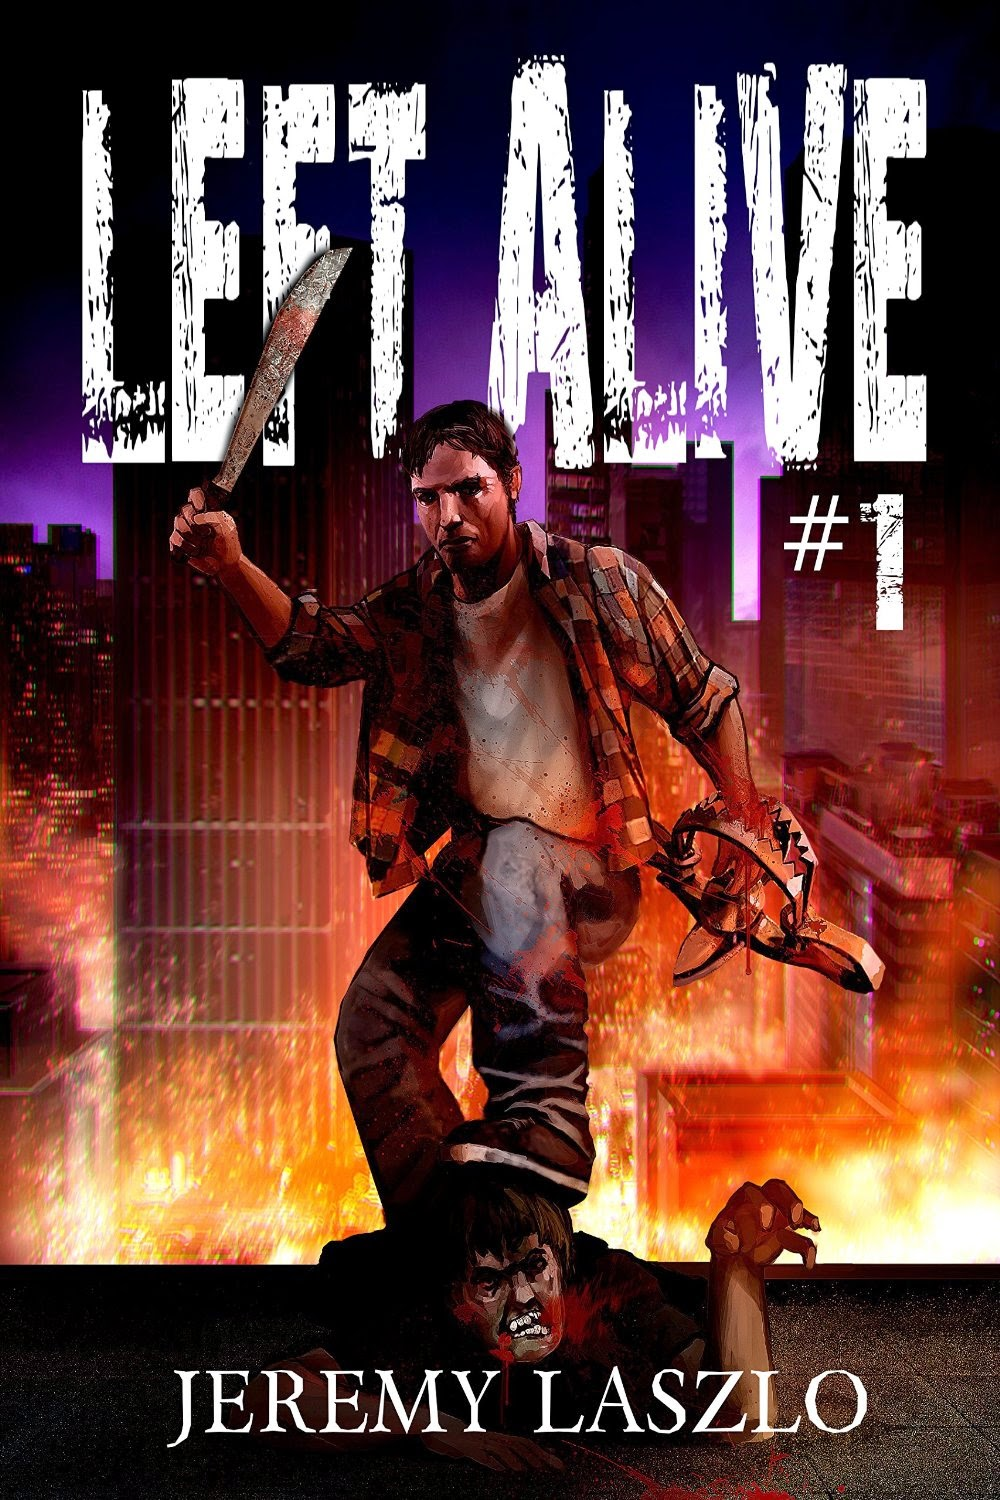 http://www.amazon.com/Left-Alive-1-Jeremy-Laszlo-ebook/dp/B00M9RNZDG/?tag=juleromans-20